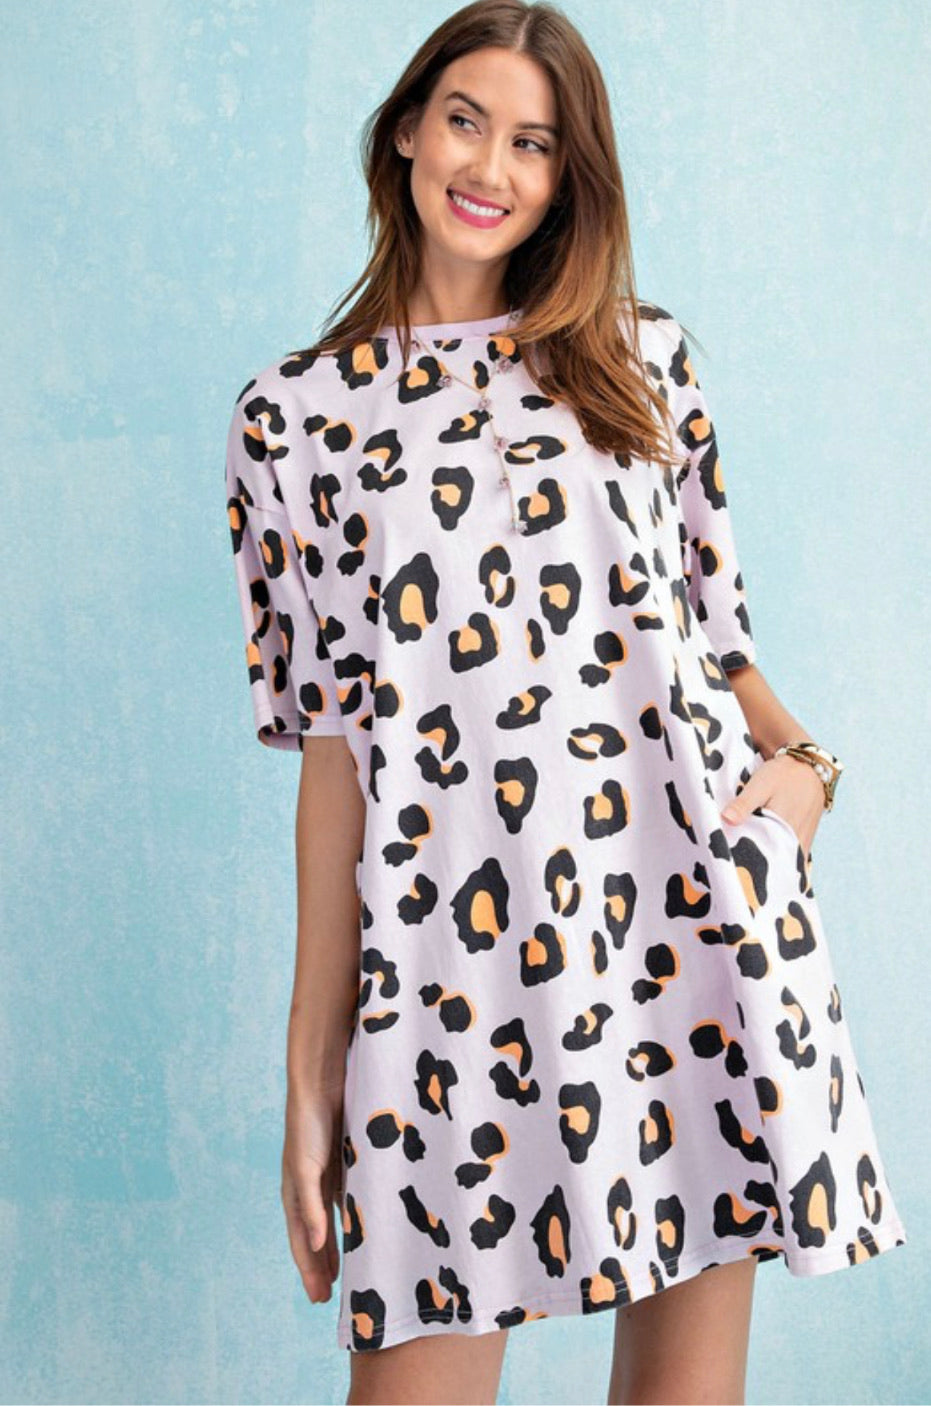 Boxy Leopard Print Dress